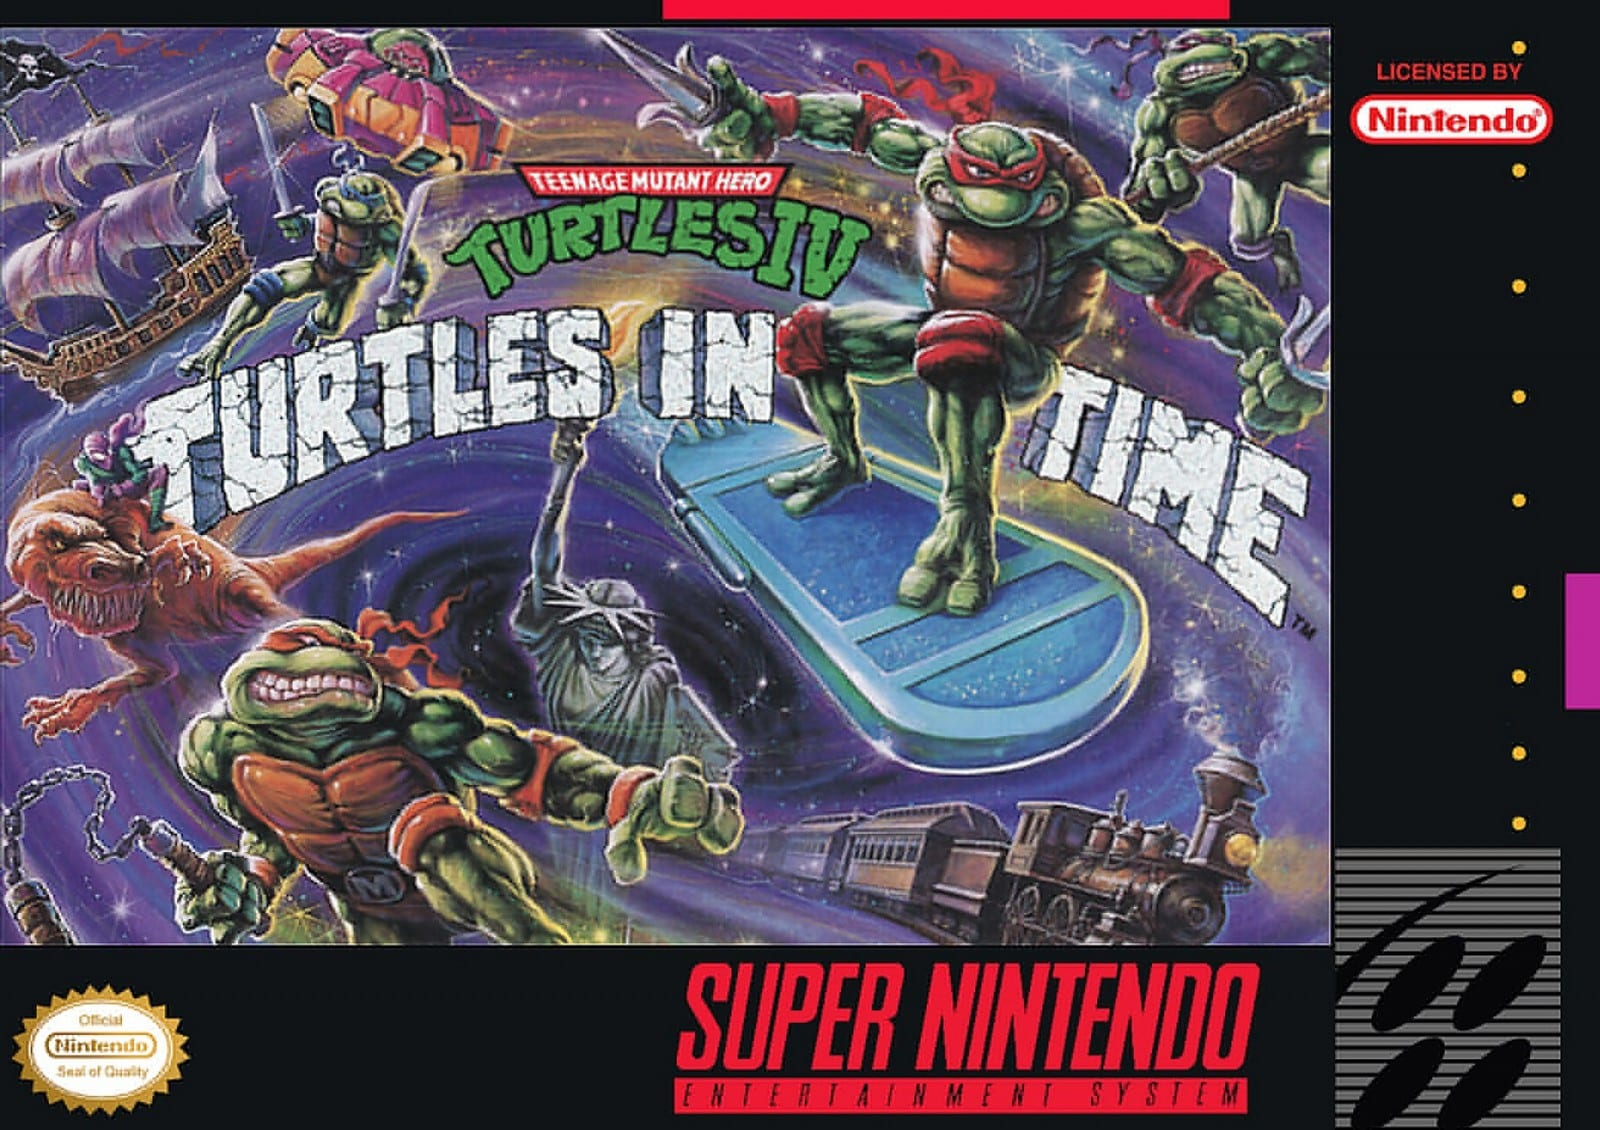 Turtles in time super nintendo game